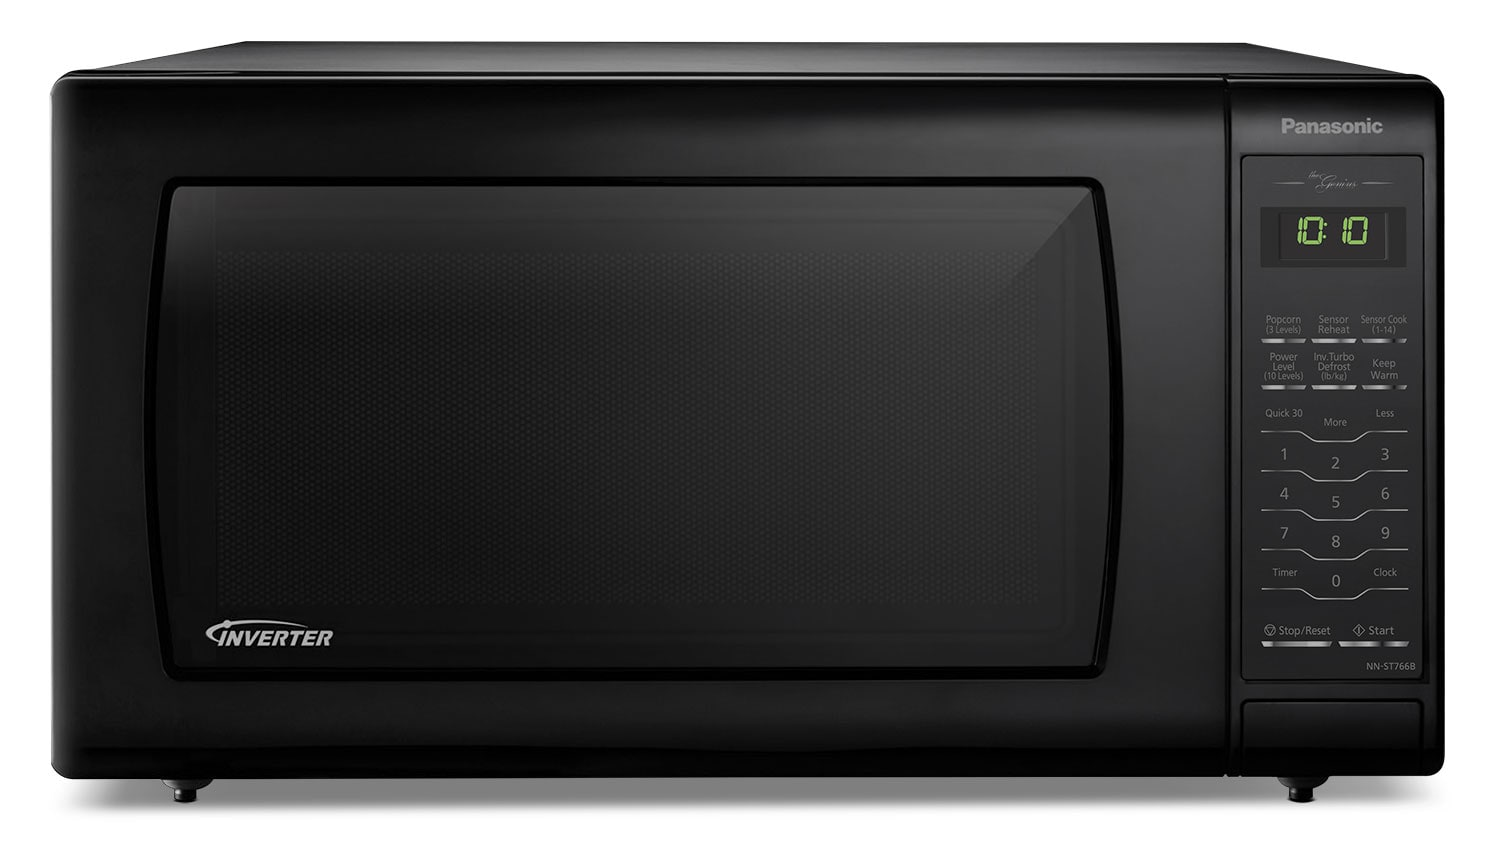 Panasonic Genius® 1.6 Cu. Ft. Countertop Microwave – NN-ST766B